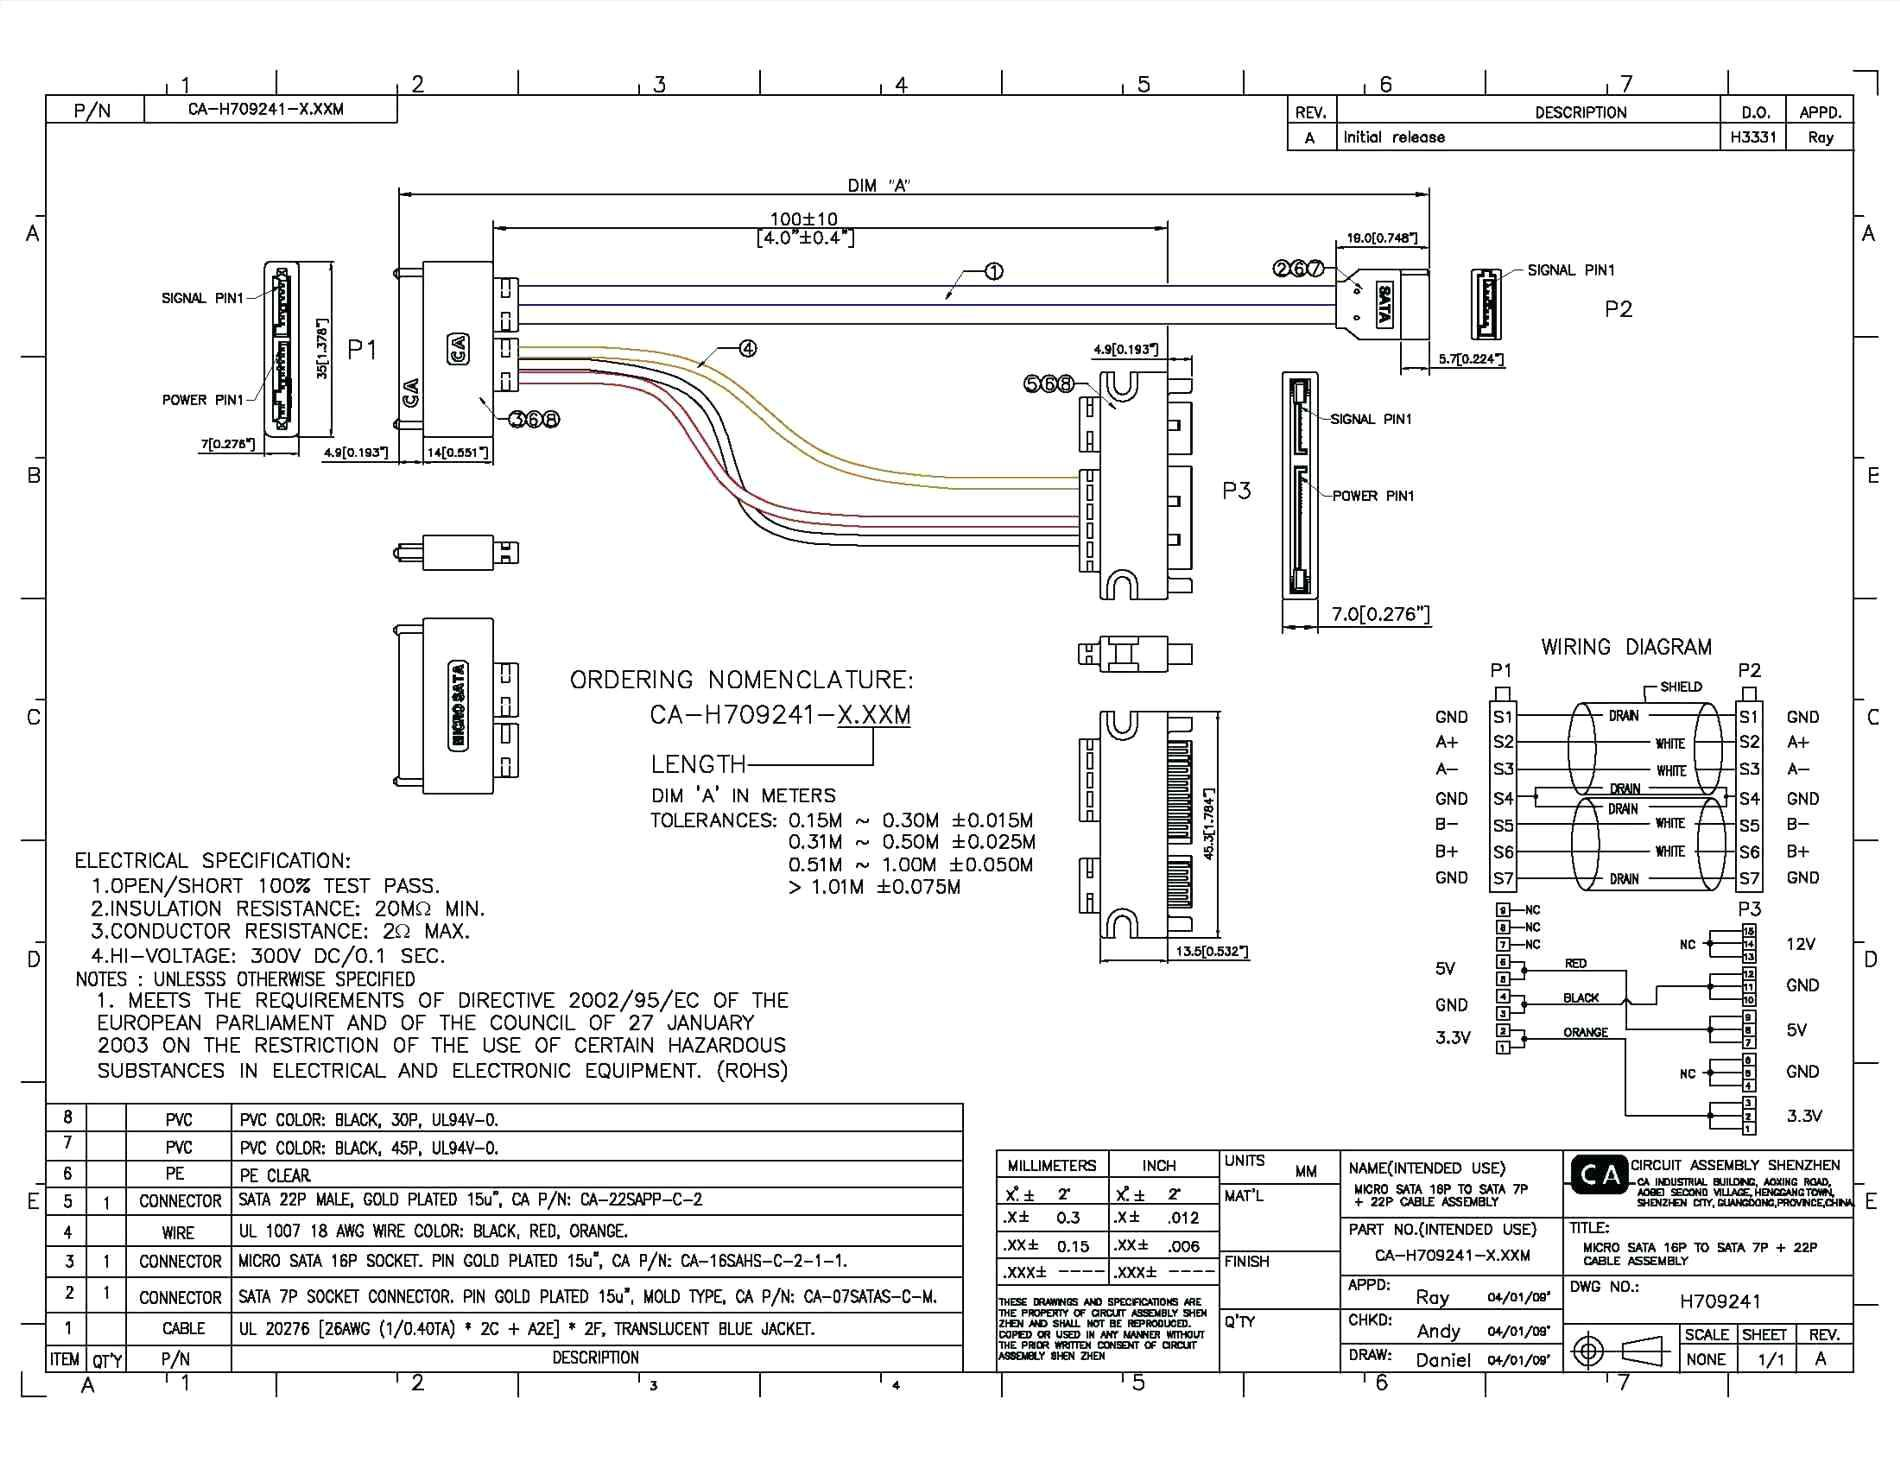 usb cable wiring, wifi wiring diagram, serial port wiring diagram, soldering iron wiring diagram, battery wiring diagram, usb connector wiring, power wiring diagram, usb otg diagram, dimensions wiring diagram, usb to usb wiring-diagram, usb to rj45 wiring-diagram, camera wiring diagram, usb to serial wiring-diagram, sata to usb diagram, usb connector schematic, software wiring diagram, usb output diagram, ethernet port wiring diagram, usb network connection diagram, on usb wiring connection diagram